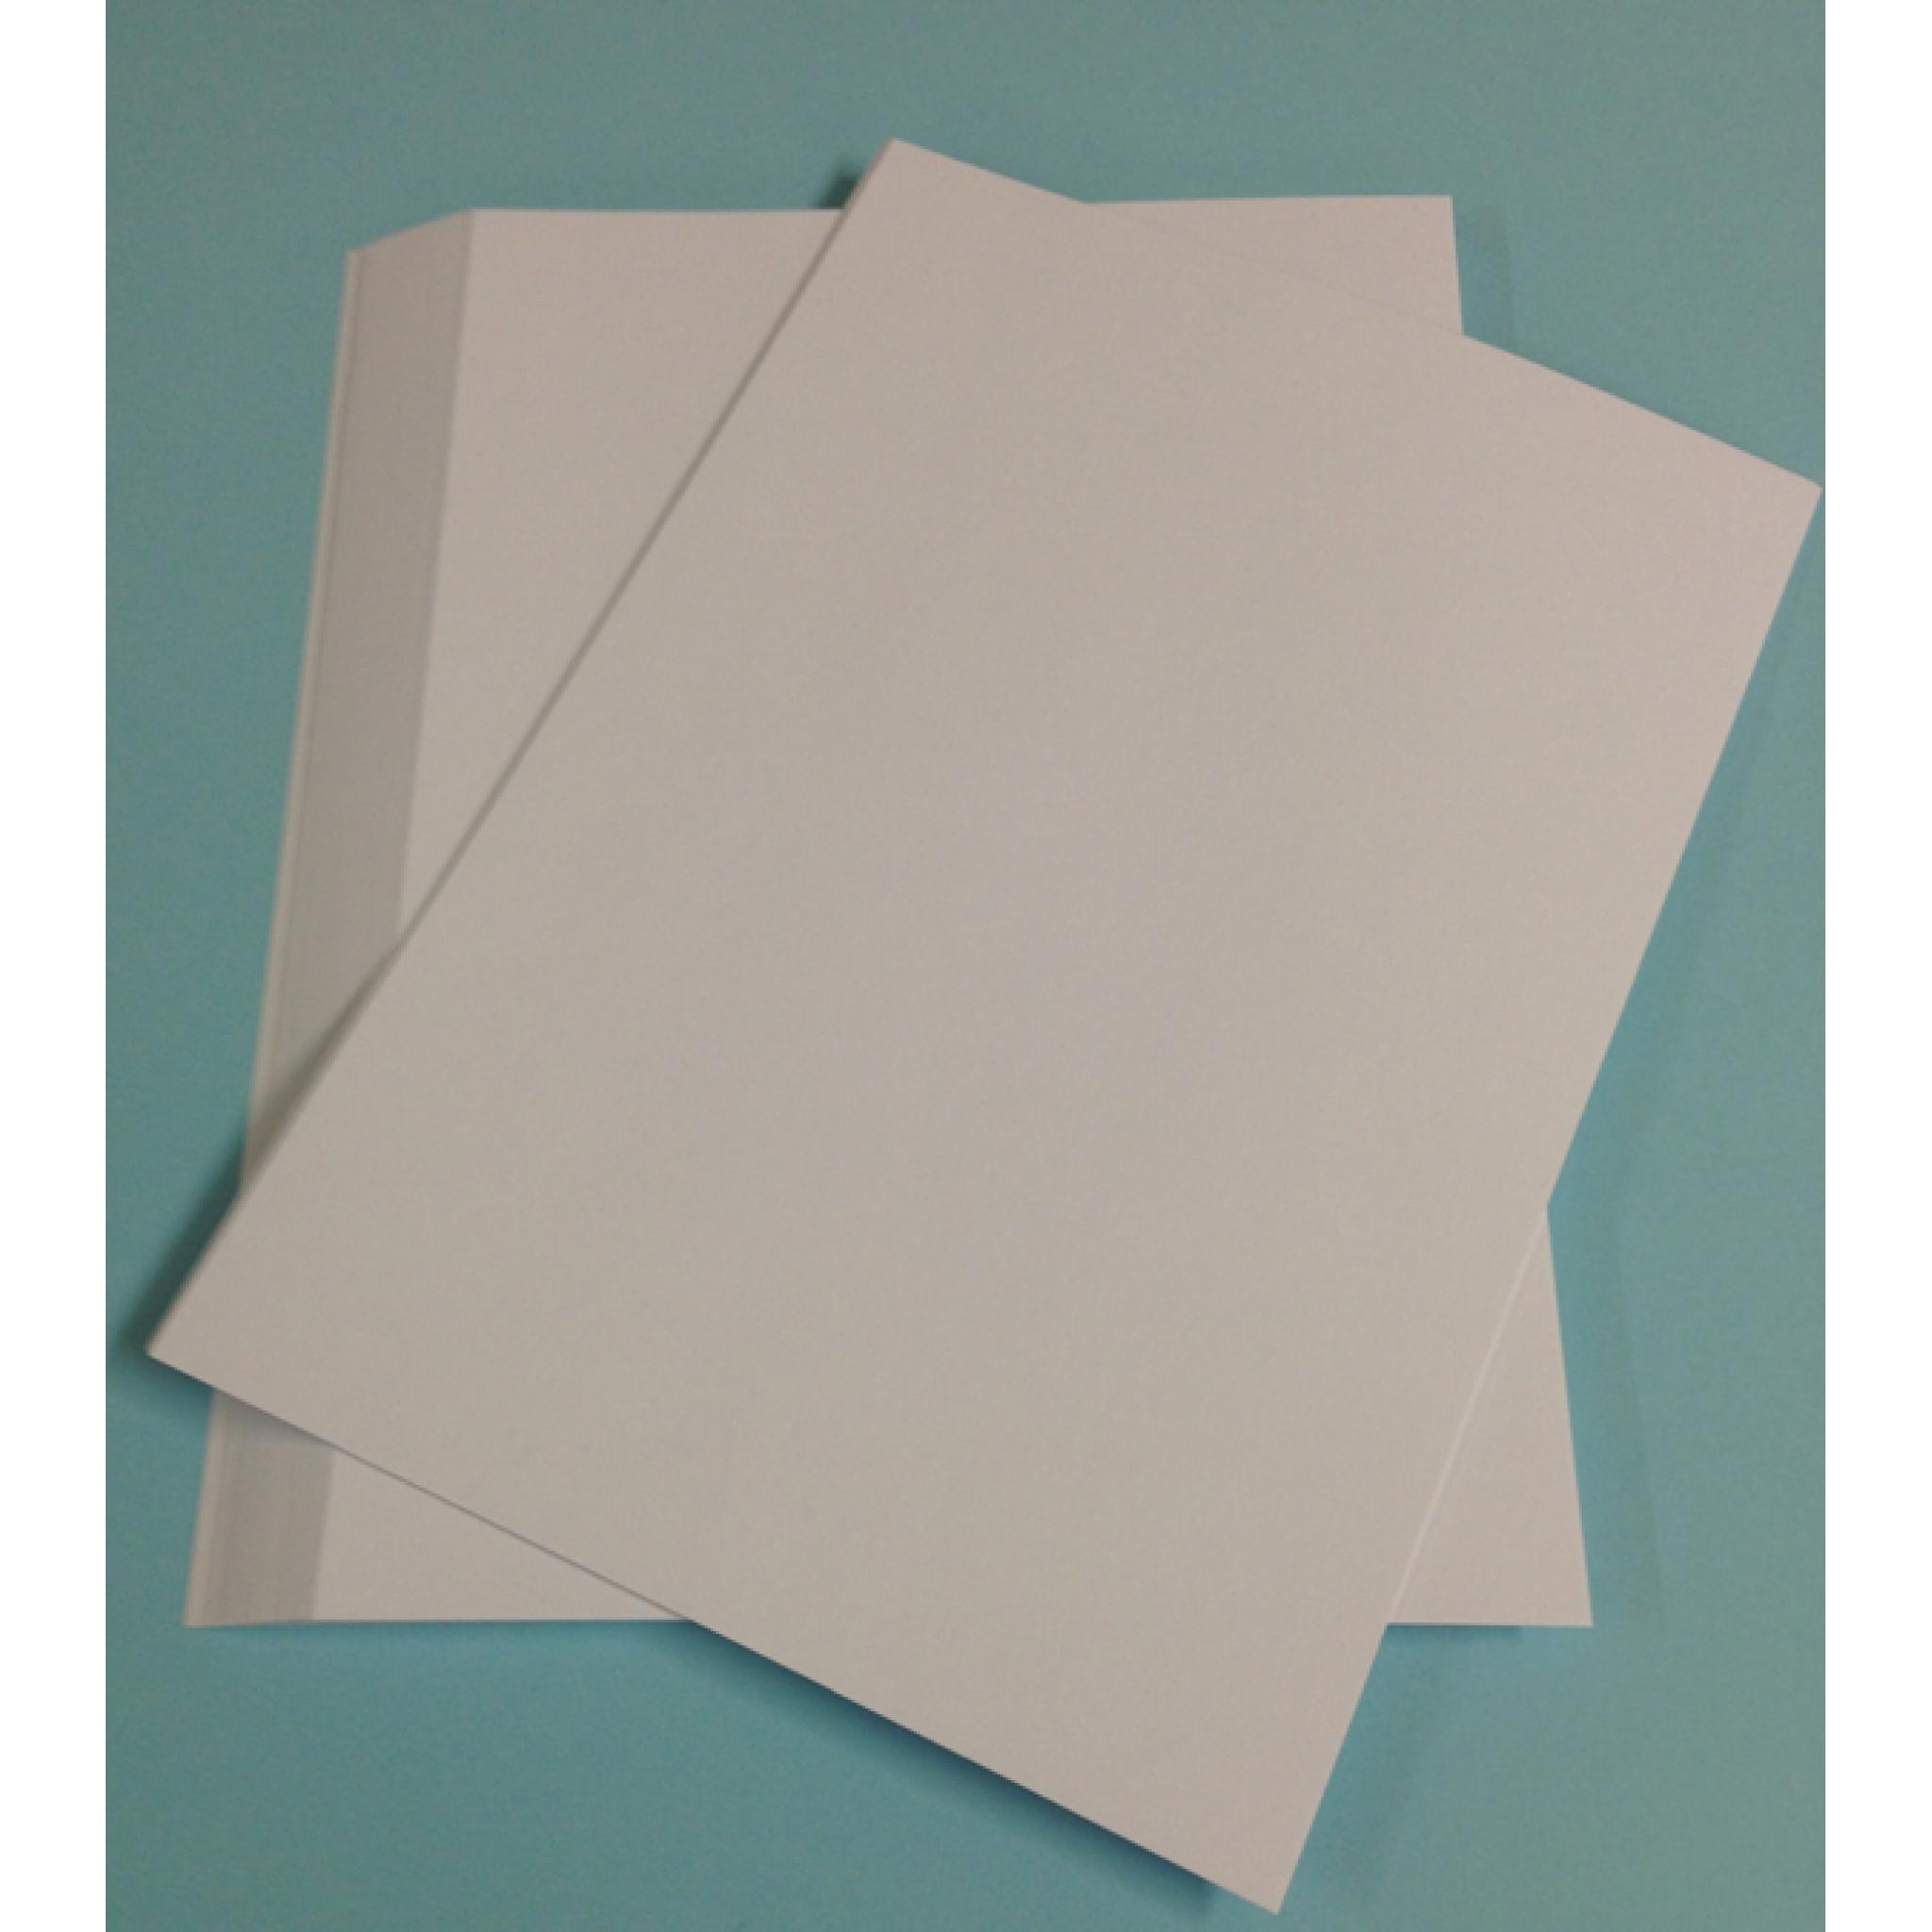 1000 A4 WHITE SHEETS Smooth Silk Craft Card Stock 250gsm